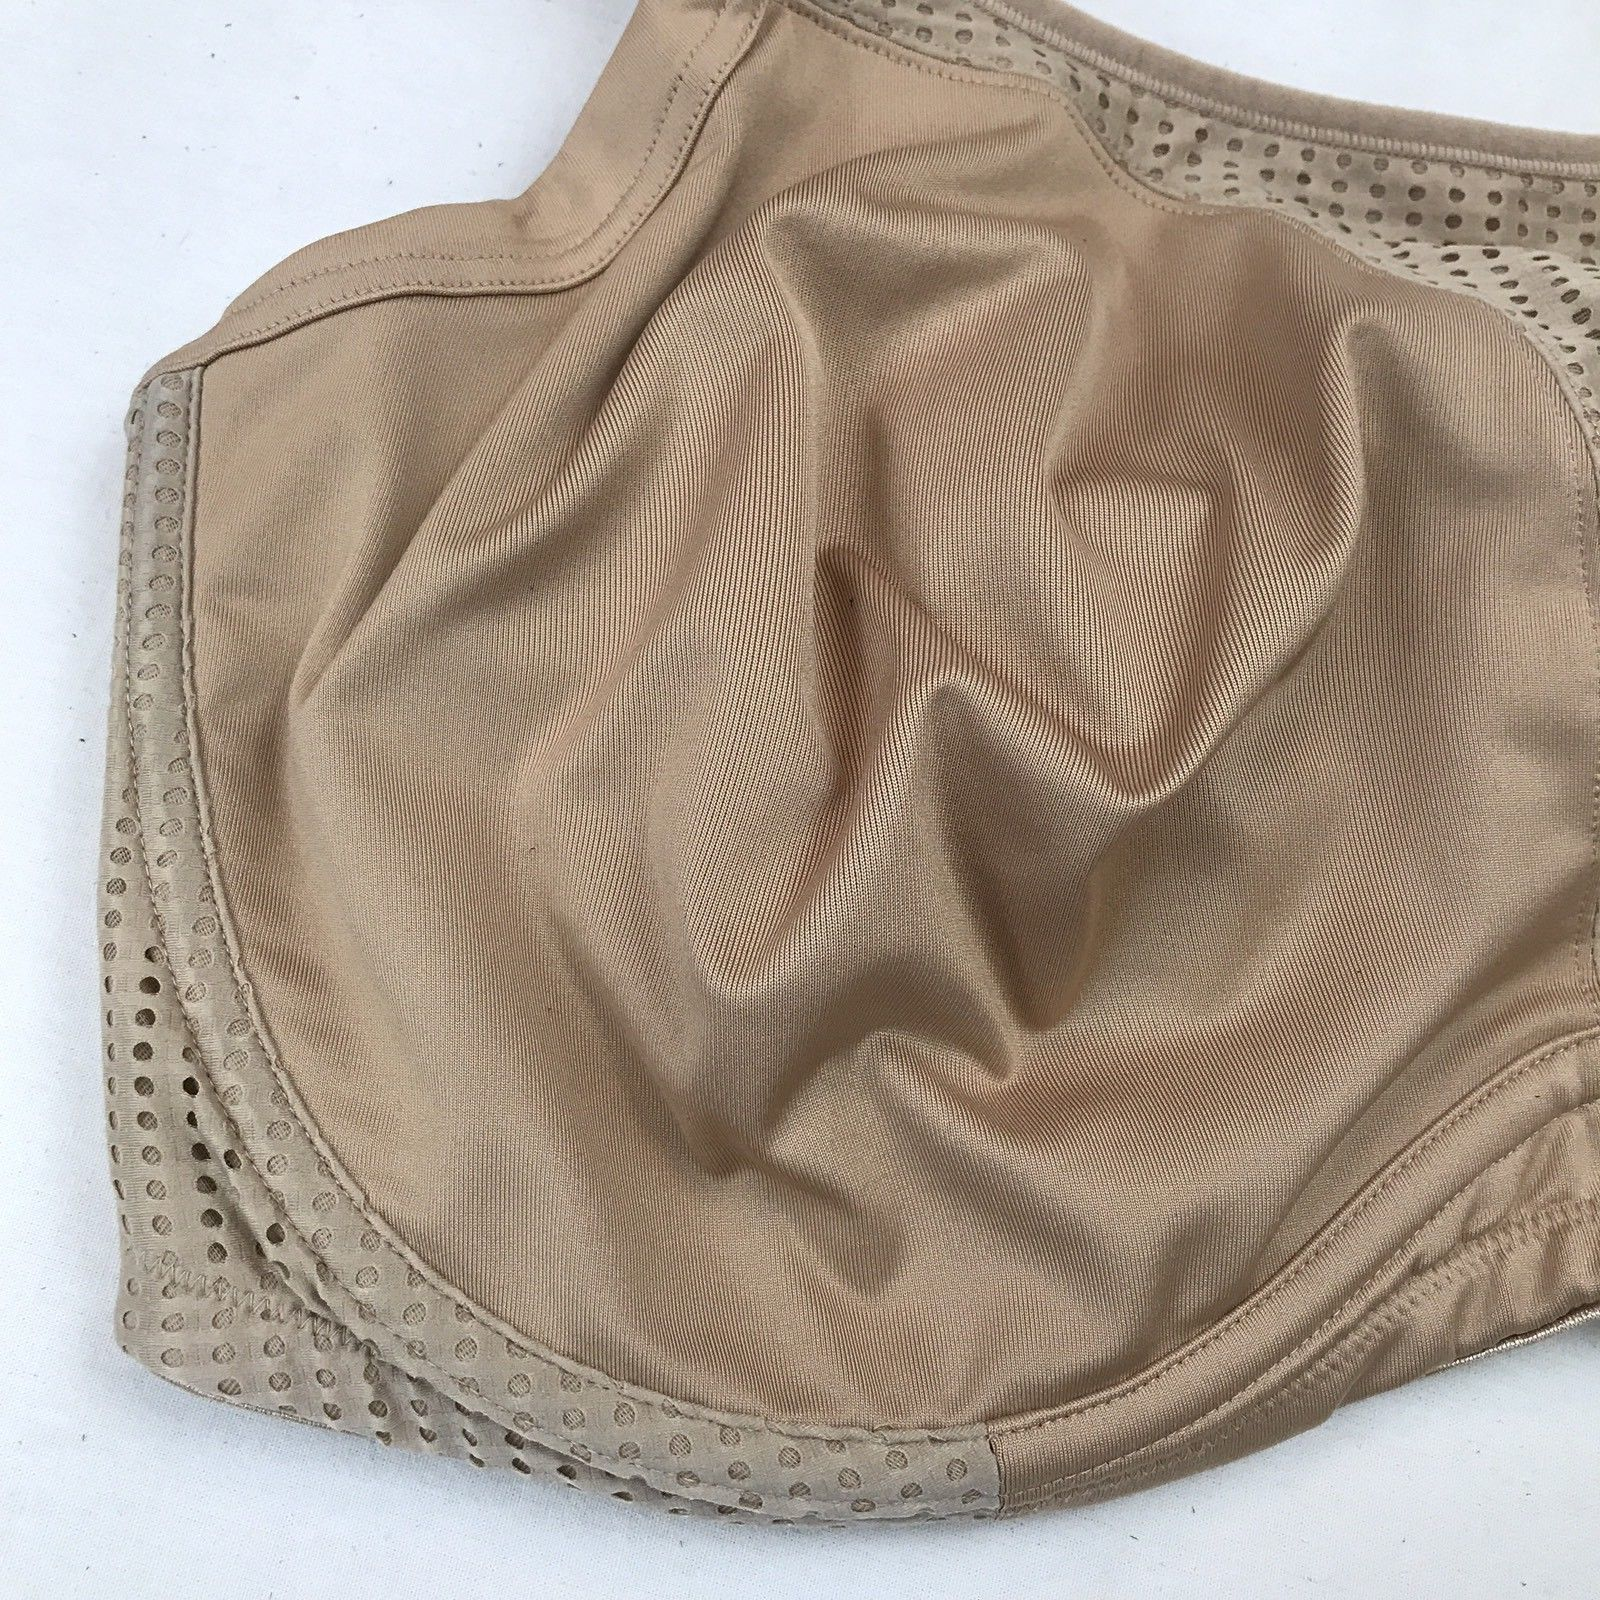 57a137e3281 Soma 44G Bra Sport Max Support Underwire  1216 Beige Mesh Side MSRP  65